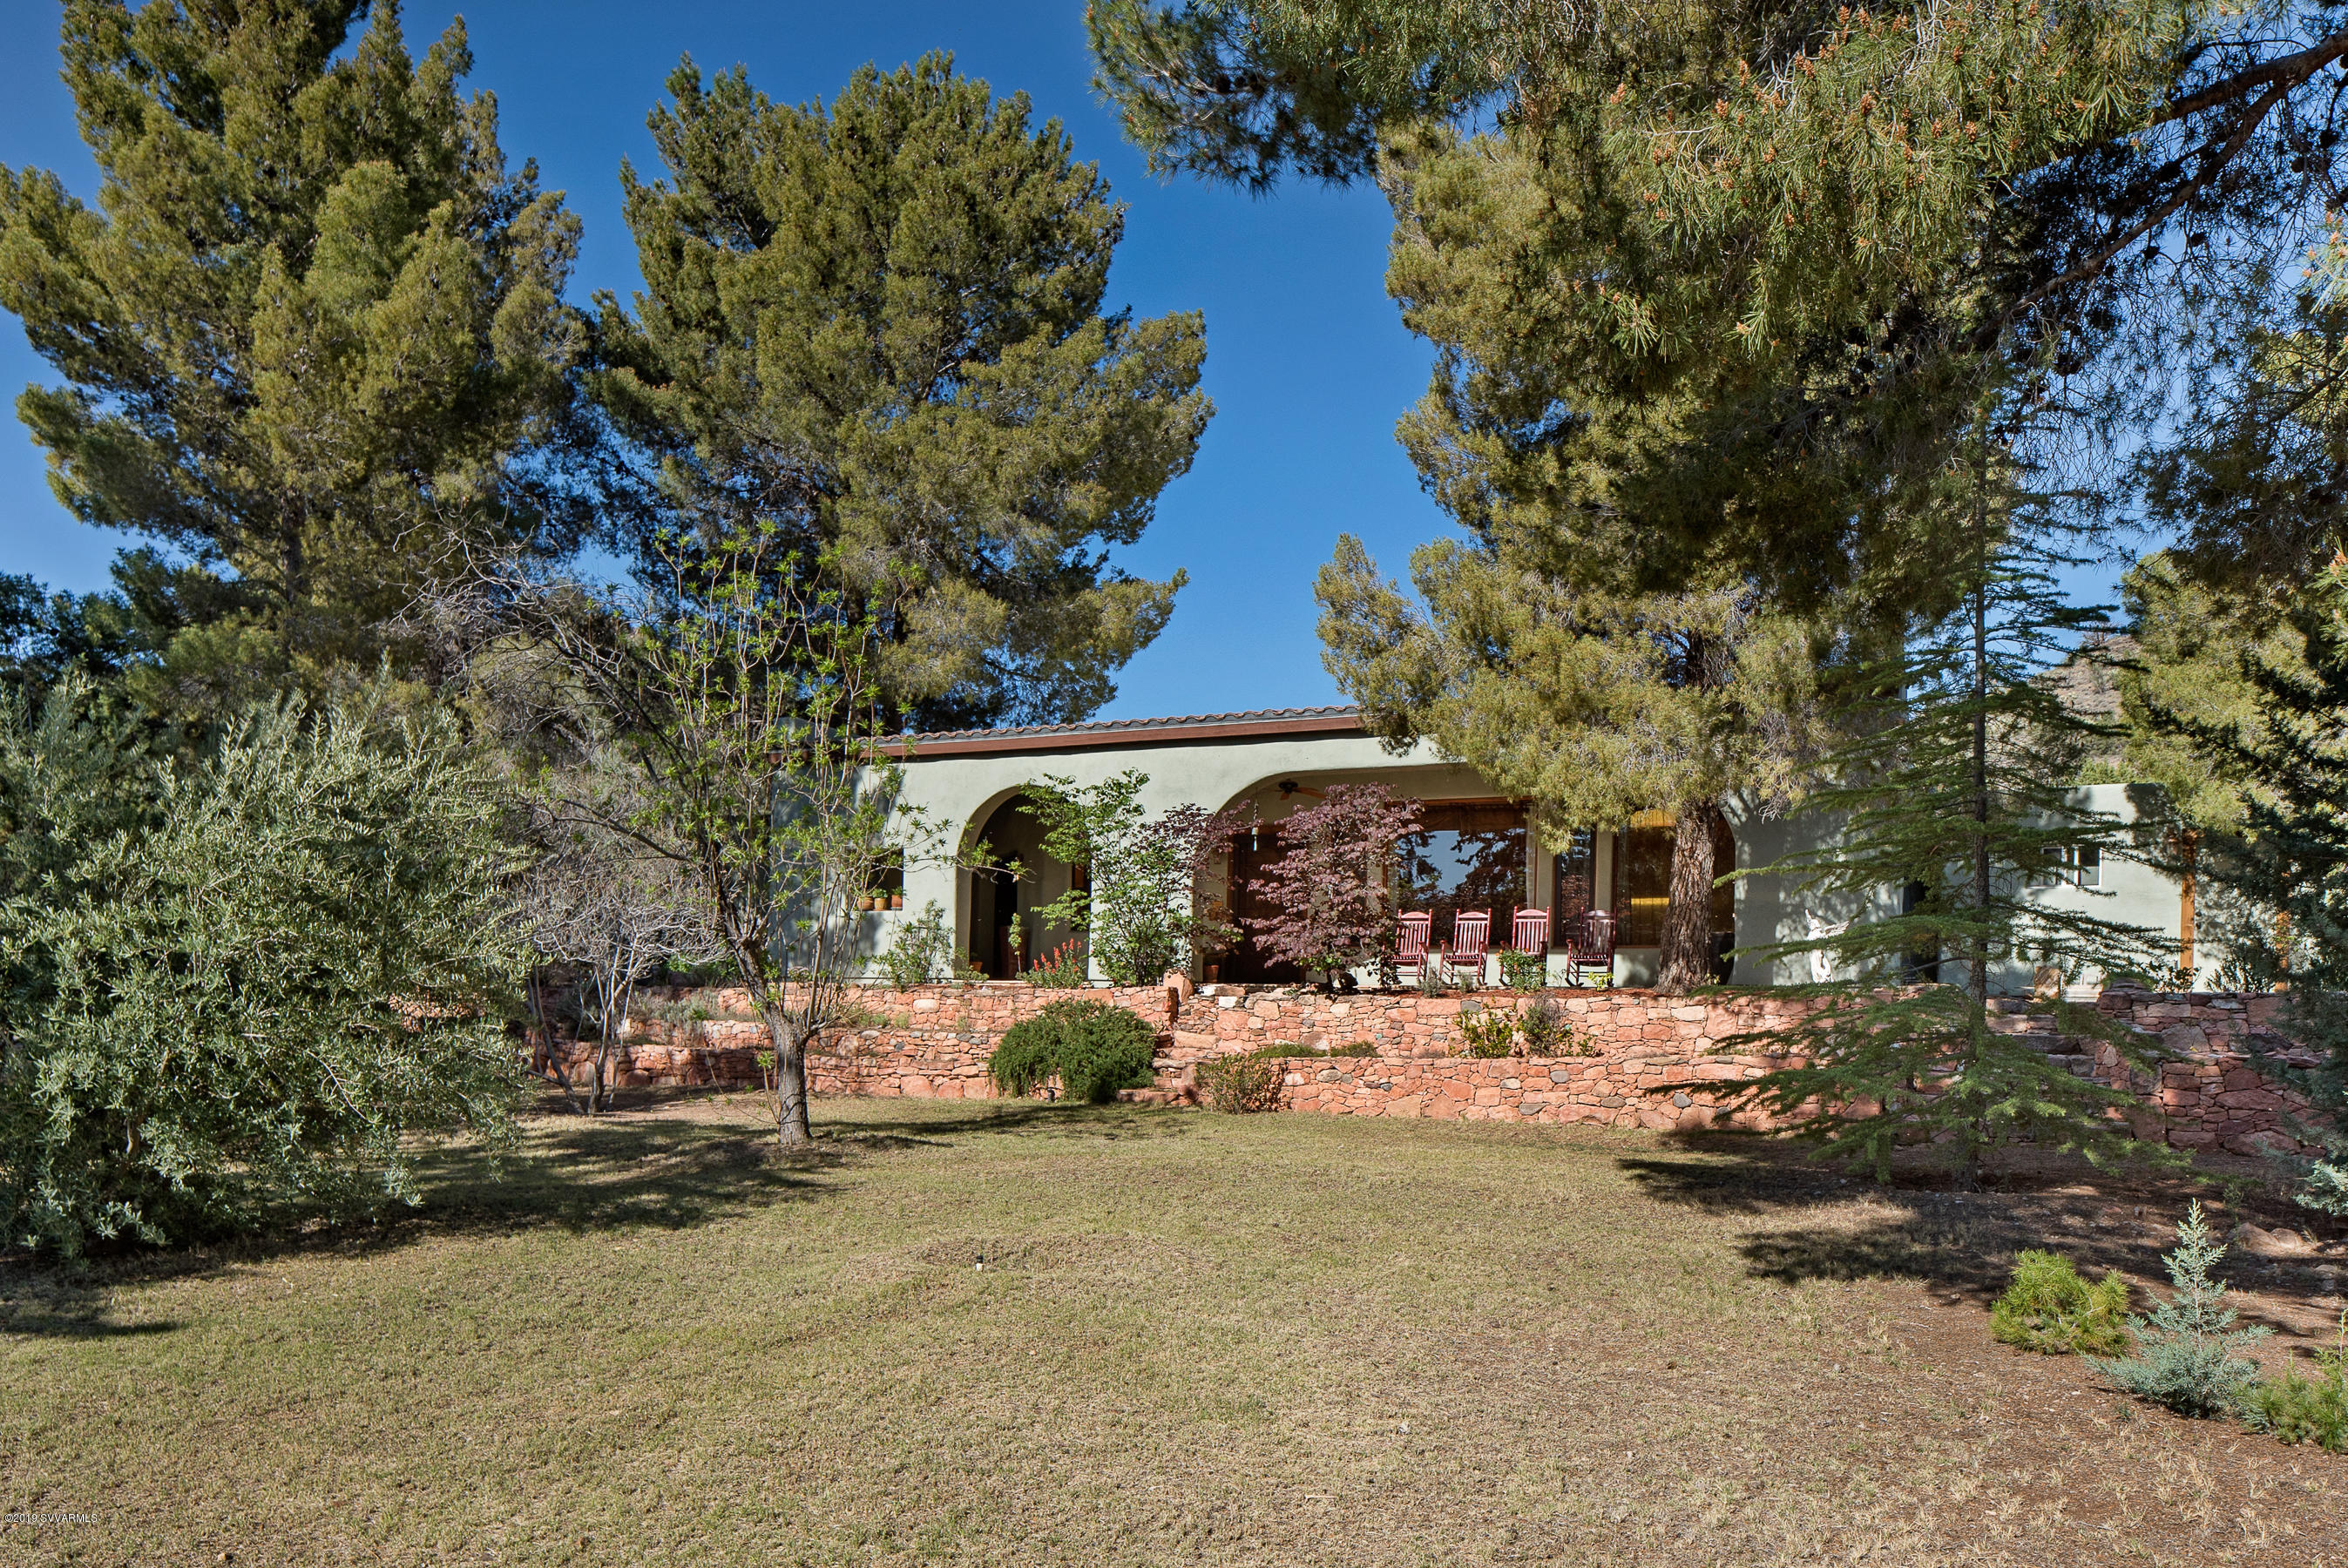 2670/2680 N Page Springs Rd Cornville, AZ 86325